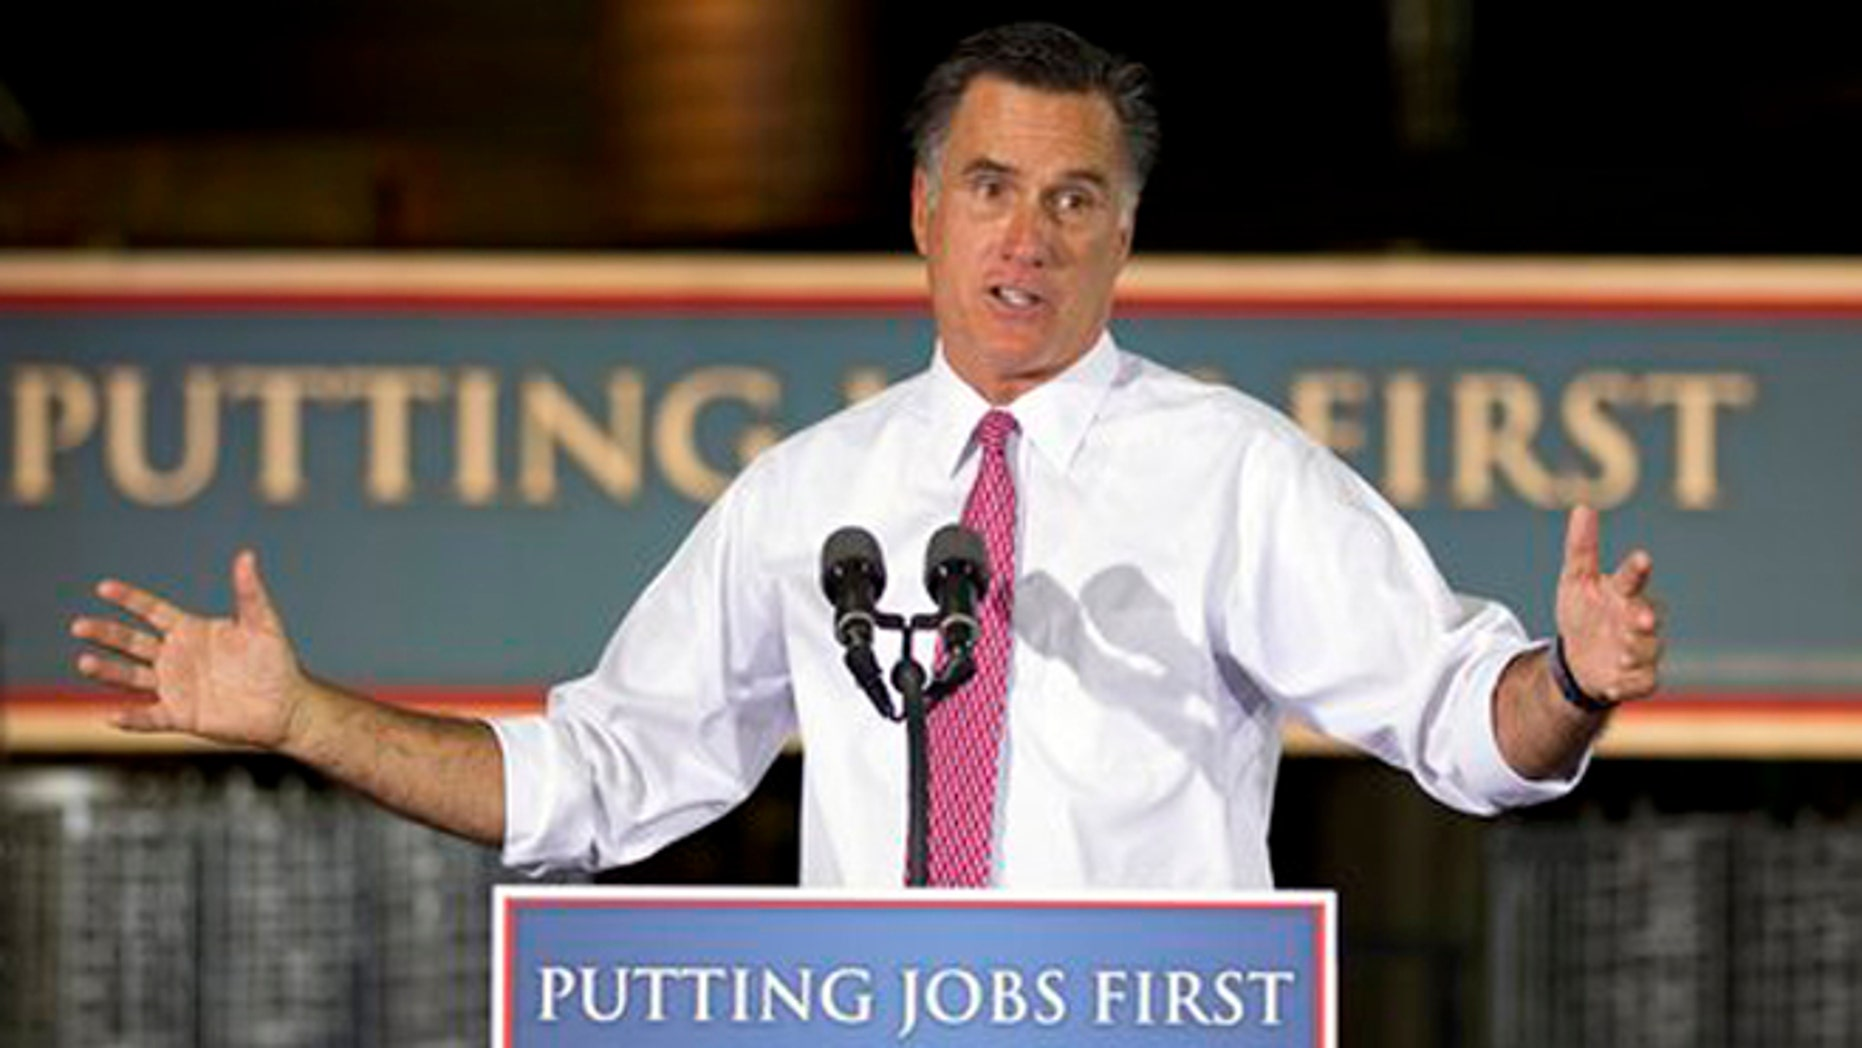 June 14, 2012: GOP presidential candidate Mitt Romney gestures during a campaign stop at Seilkop Industries in Cincinnati, Ohio.